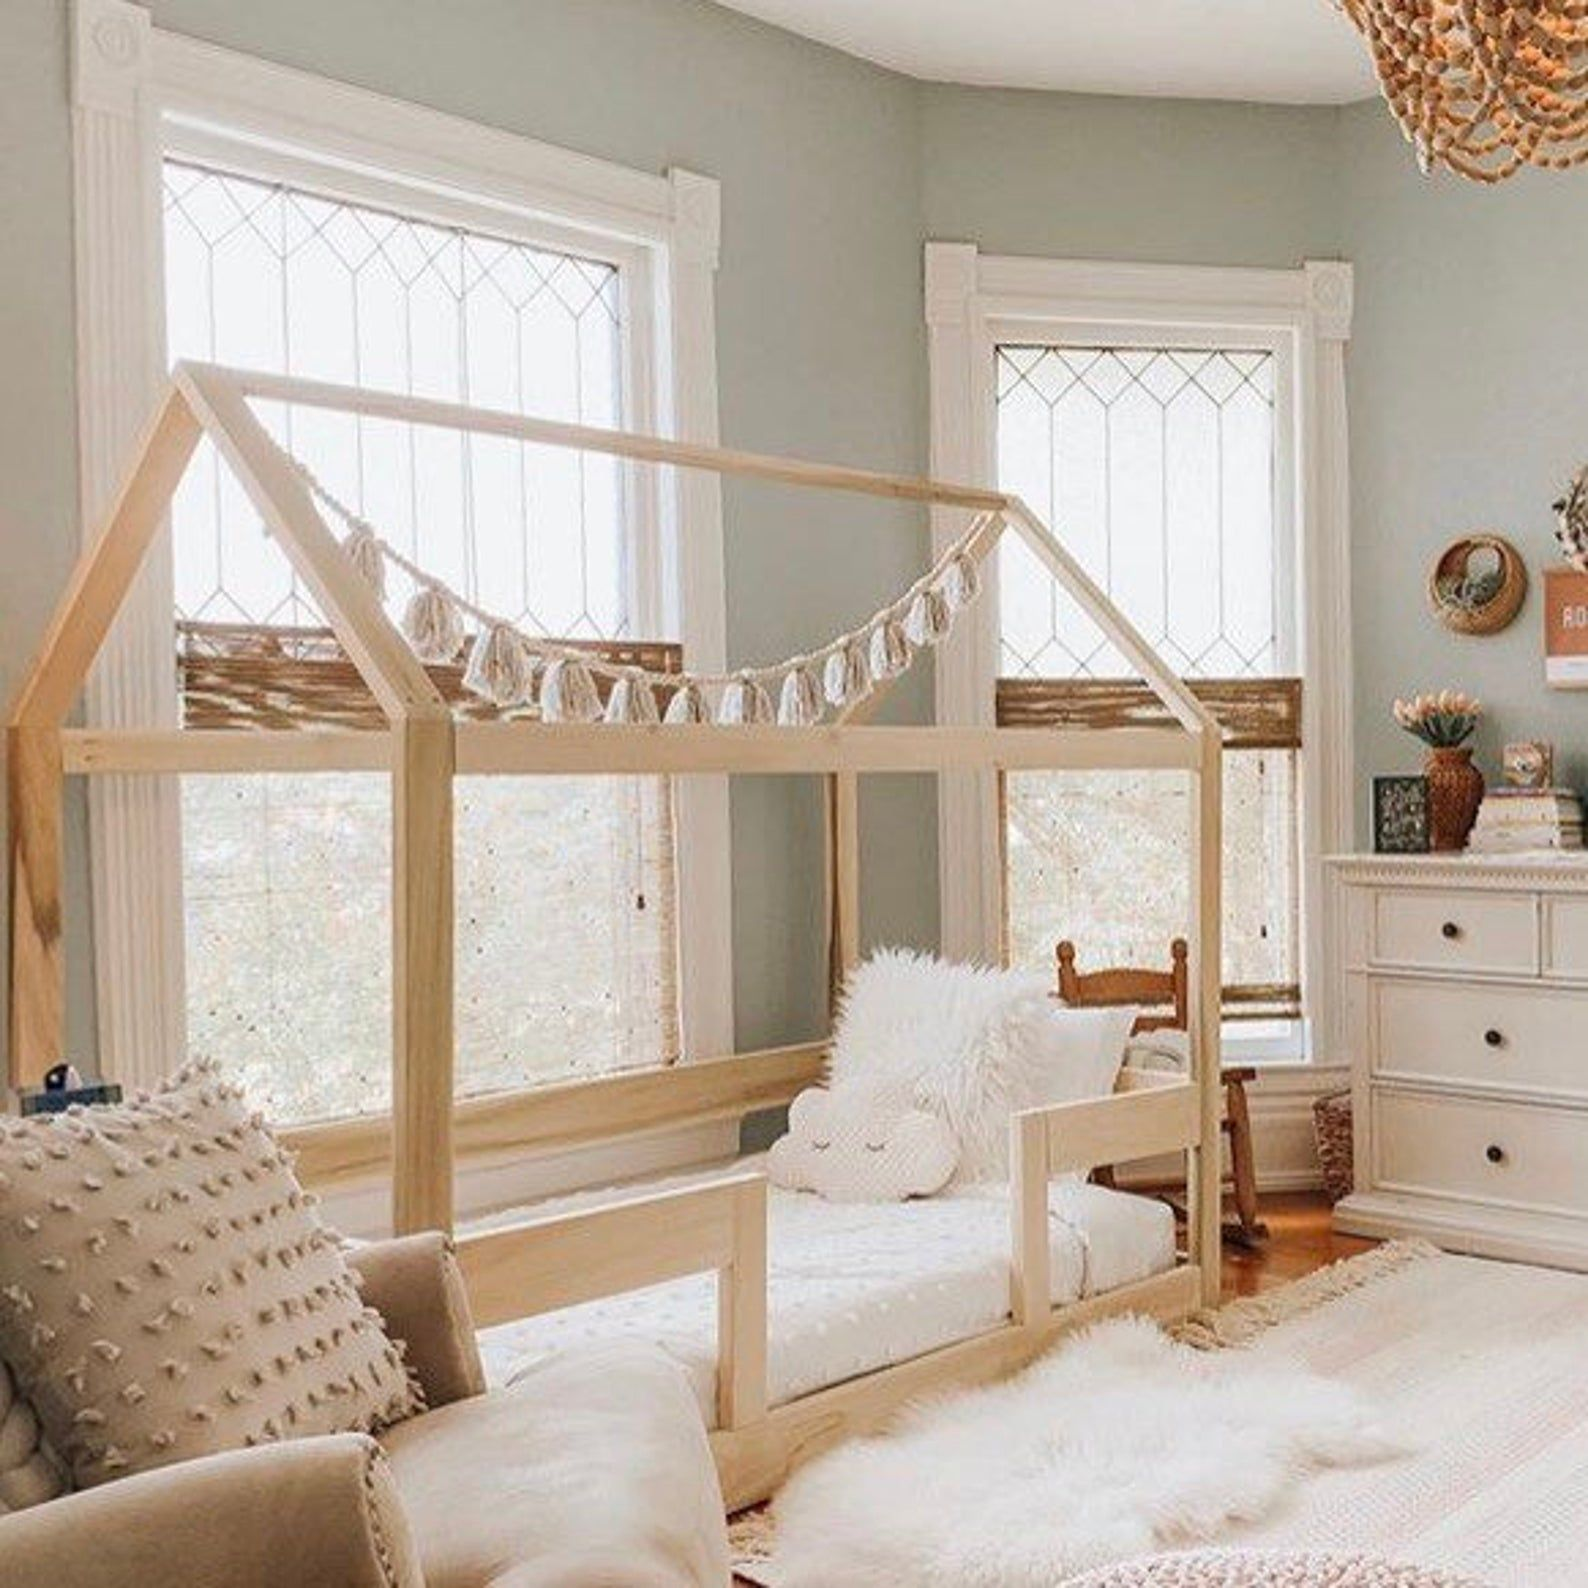 Twin House Bed Frame Railings Mattress Slats Made In Us